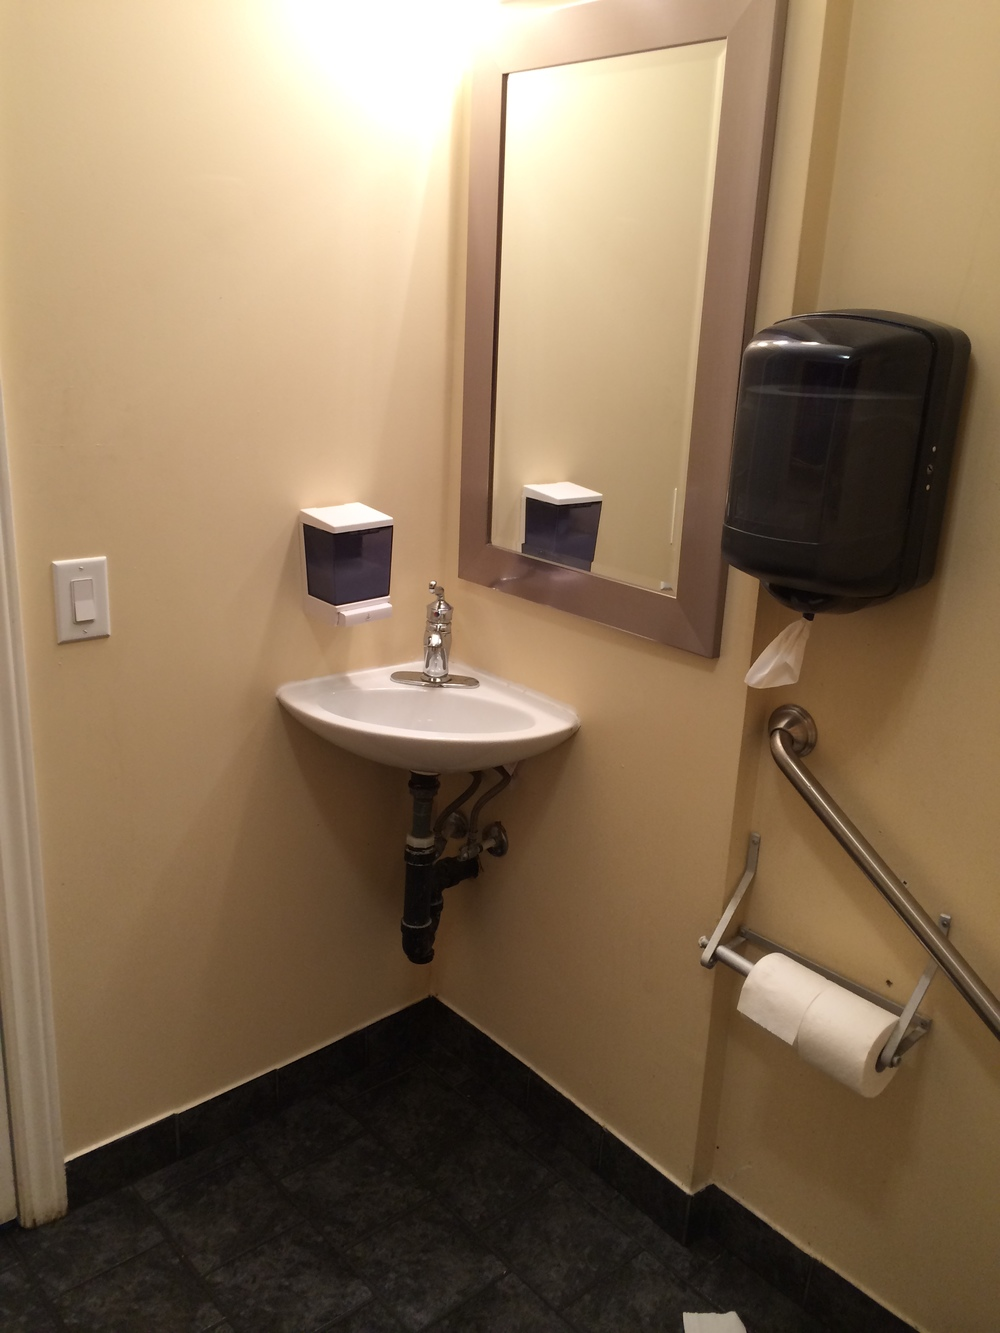 Picture of sink in accessible washroom.